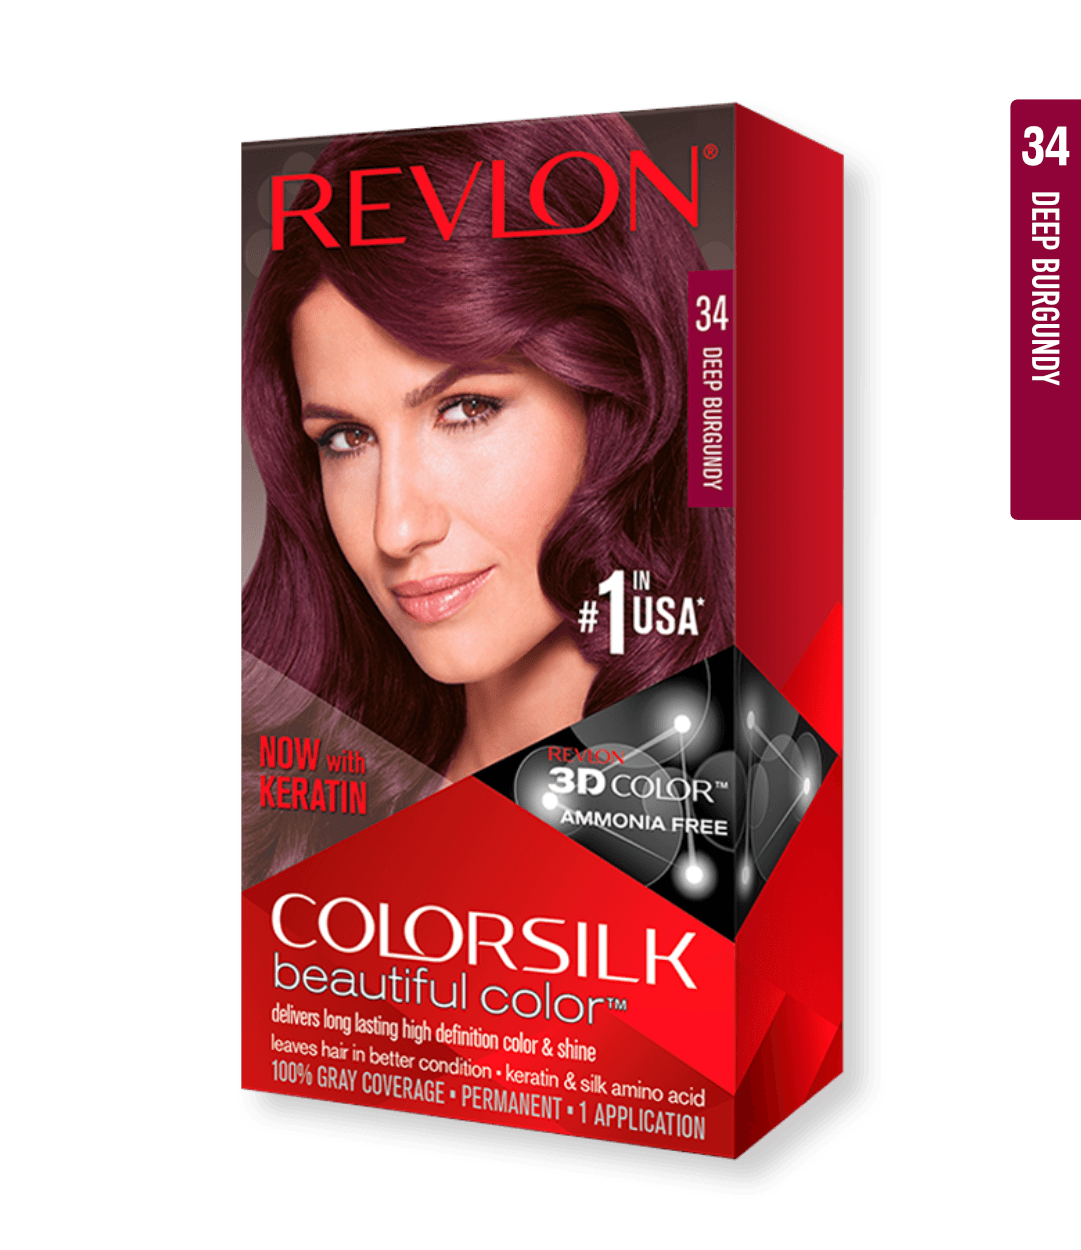 Revlon ColorSilk 34 Deep Burgundy | Duo Cosmetics